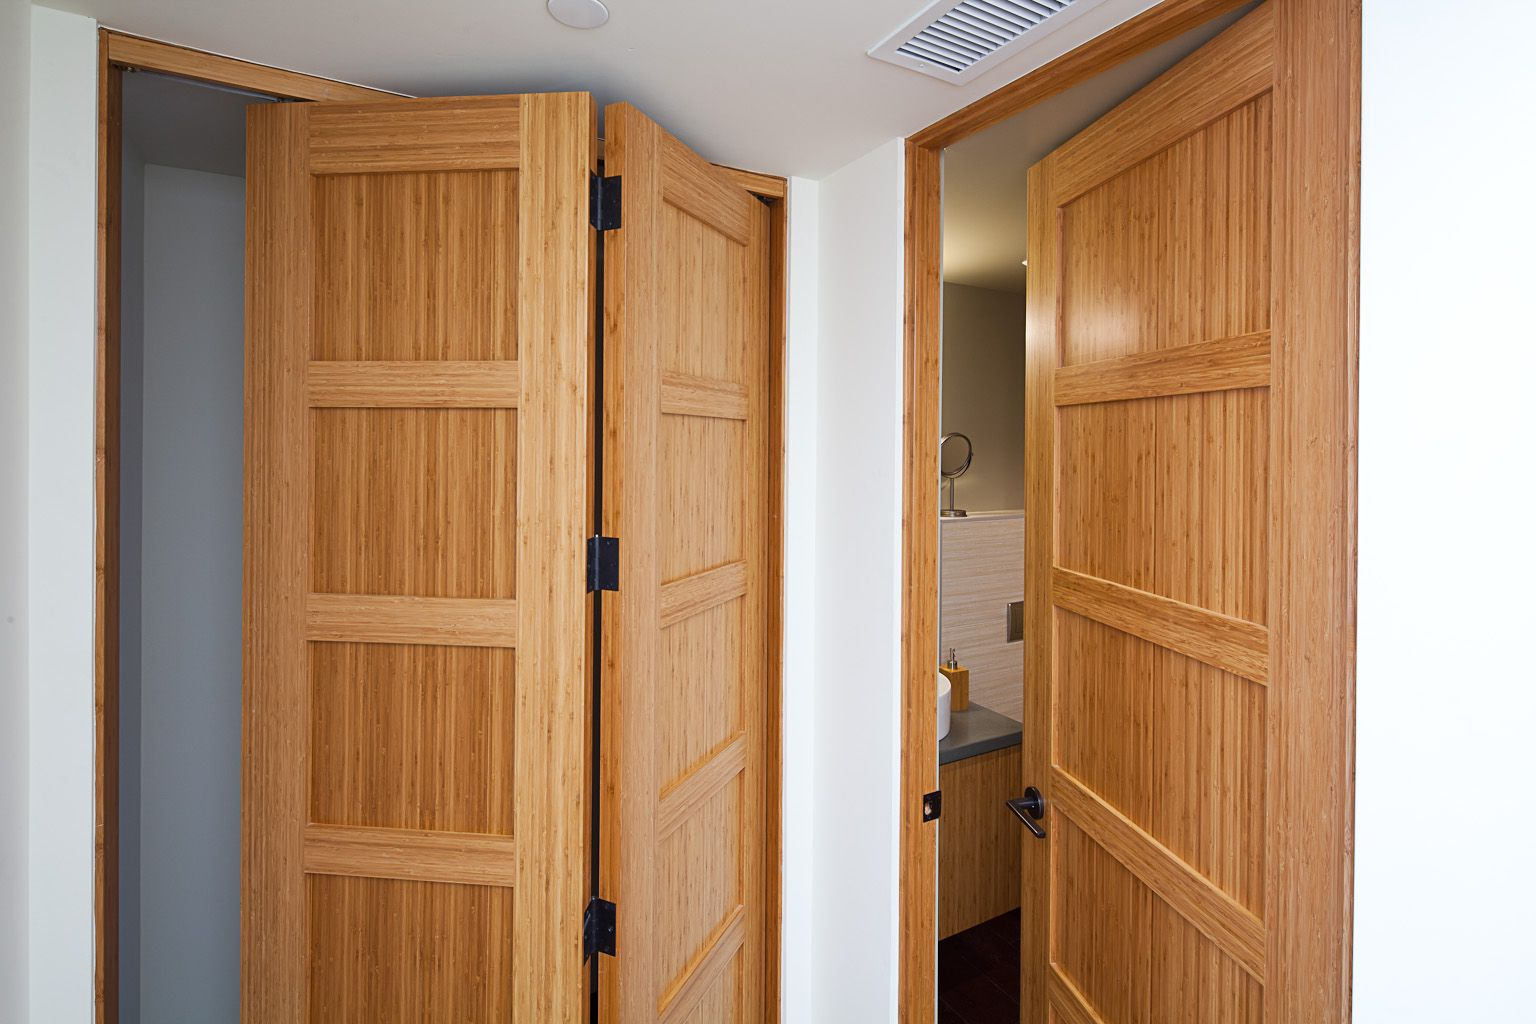 This Is A Bamboo Door That Uses A Stile And Rail Construction With